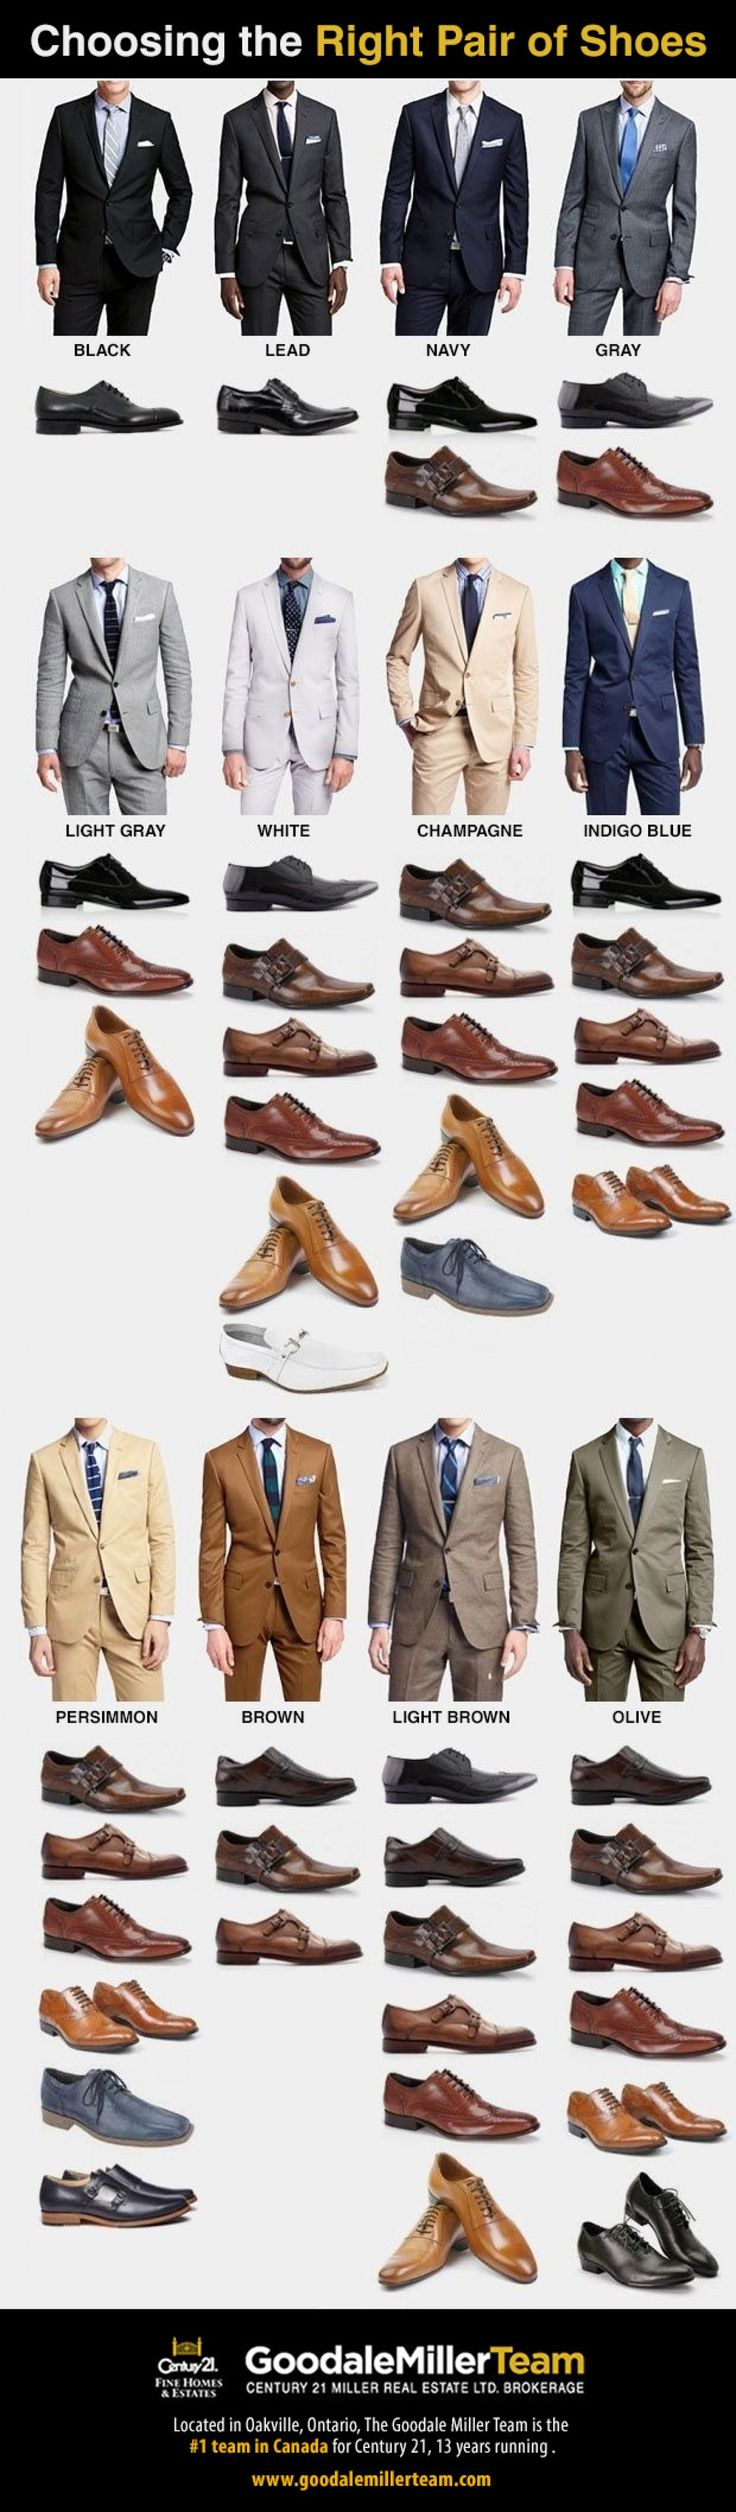 Choosing the Right Pair of Shoes #infographic